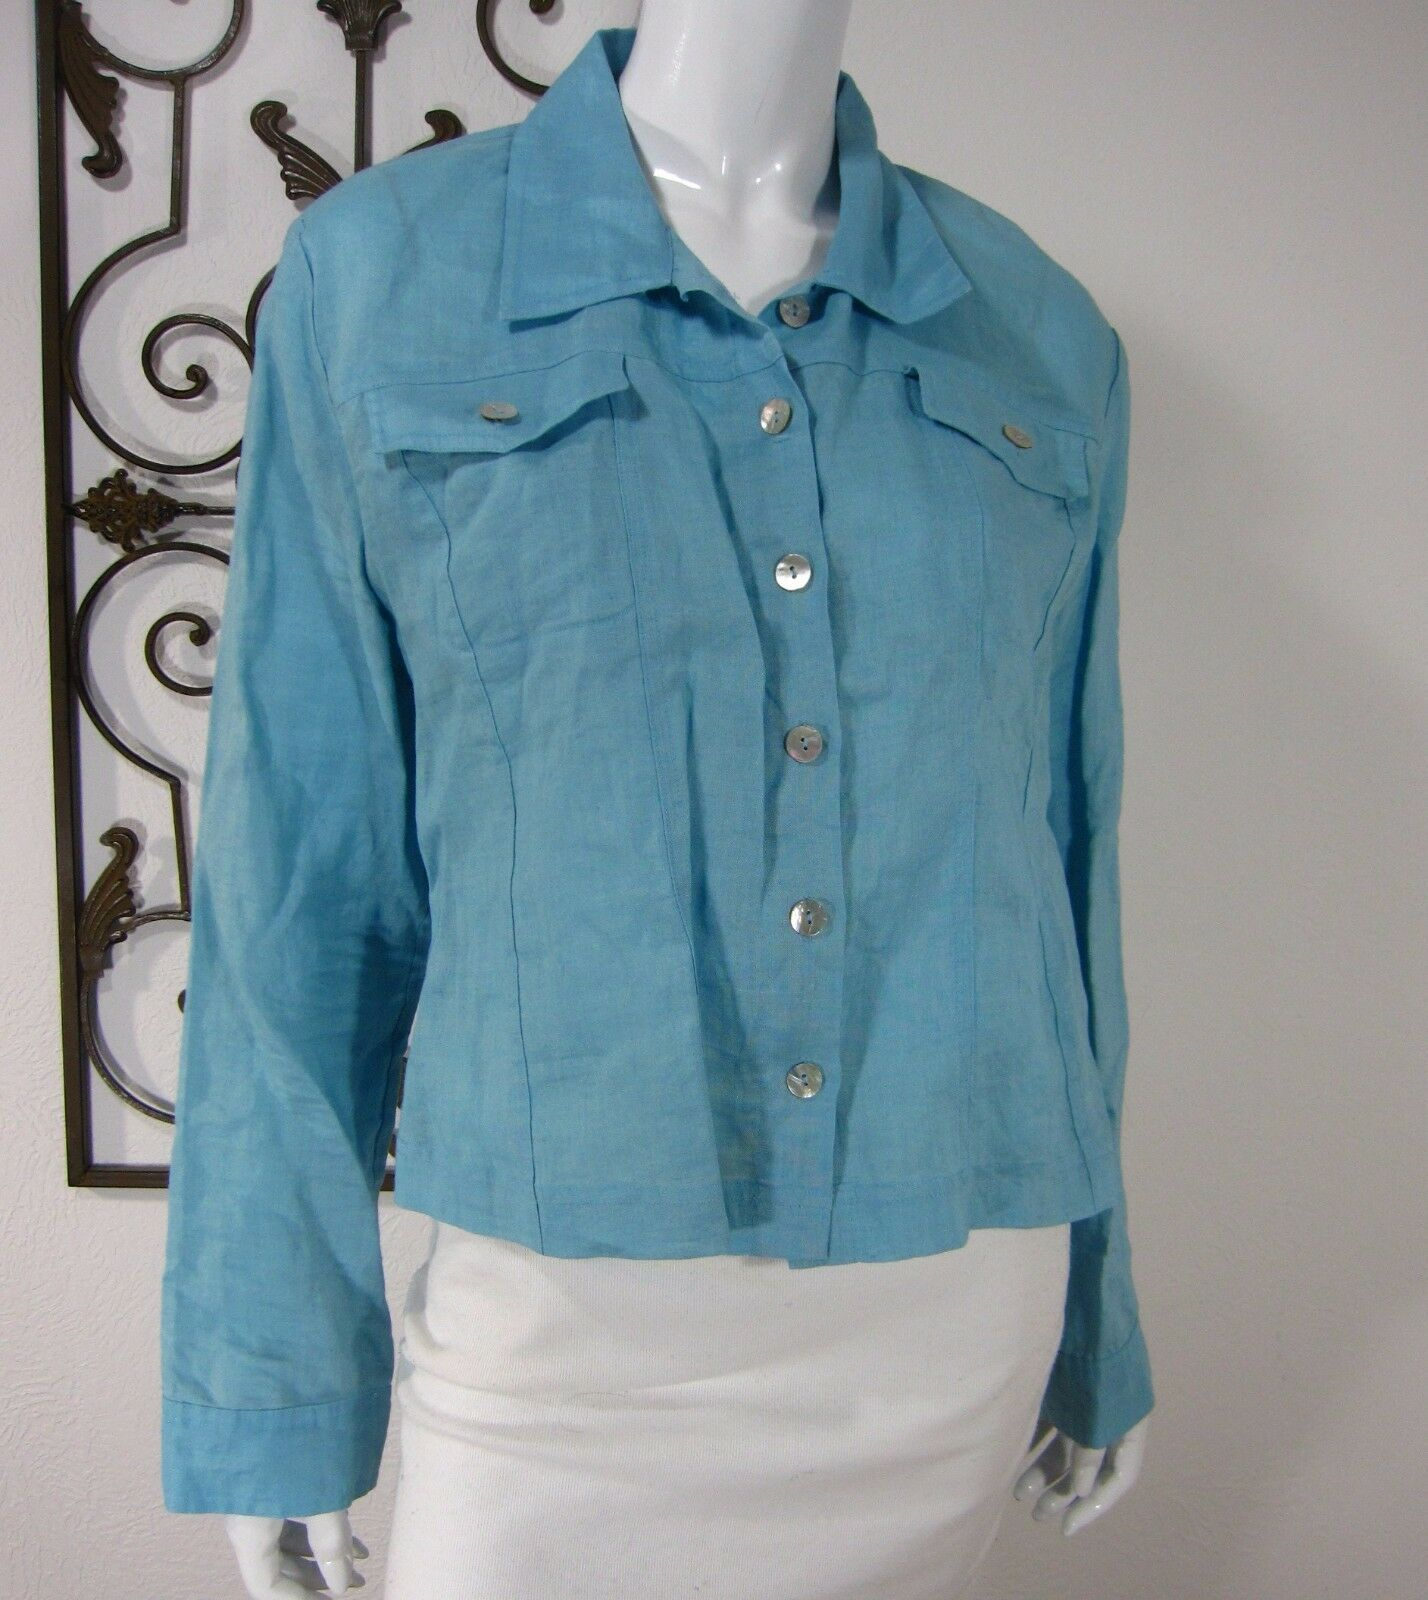 Allison Taylor 100% Linen Long Sleeve Blouse Size XL EXTRA LARGE Solid bluee